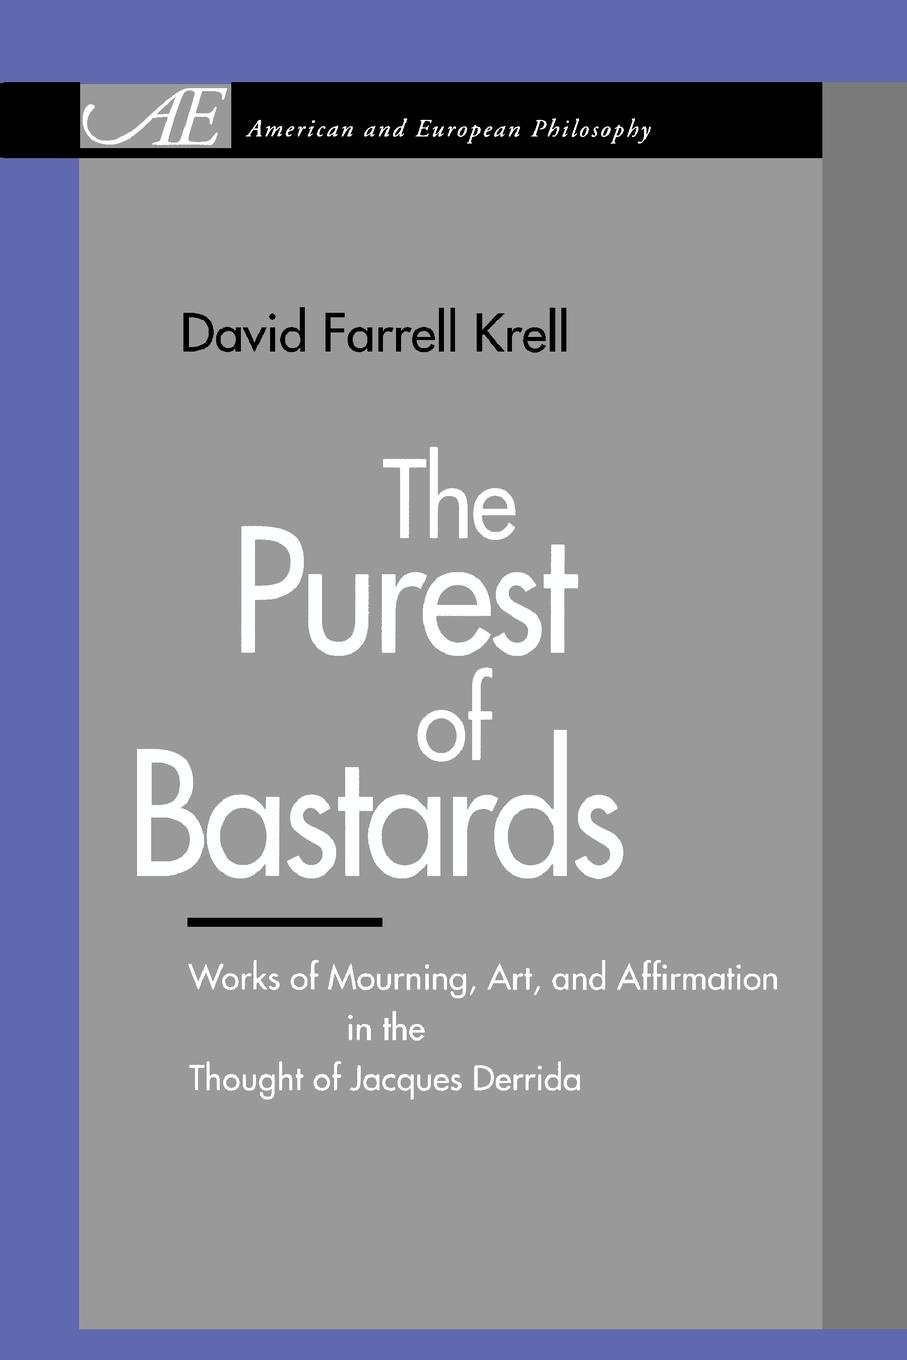 David Farrell Krell The Purest of Bastards. Works of Mourning, Art, and Affirmation in the Thought of Jacques Derrida trifonas donada peters derrida deconstruction and education ethics of pedagogy and research